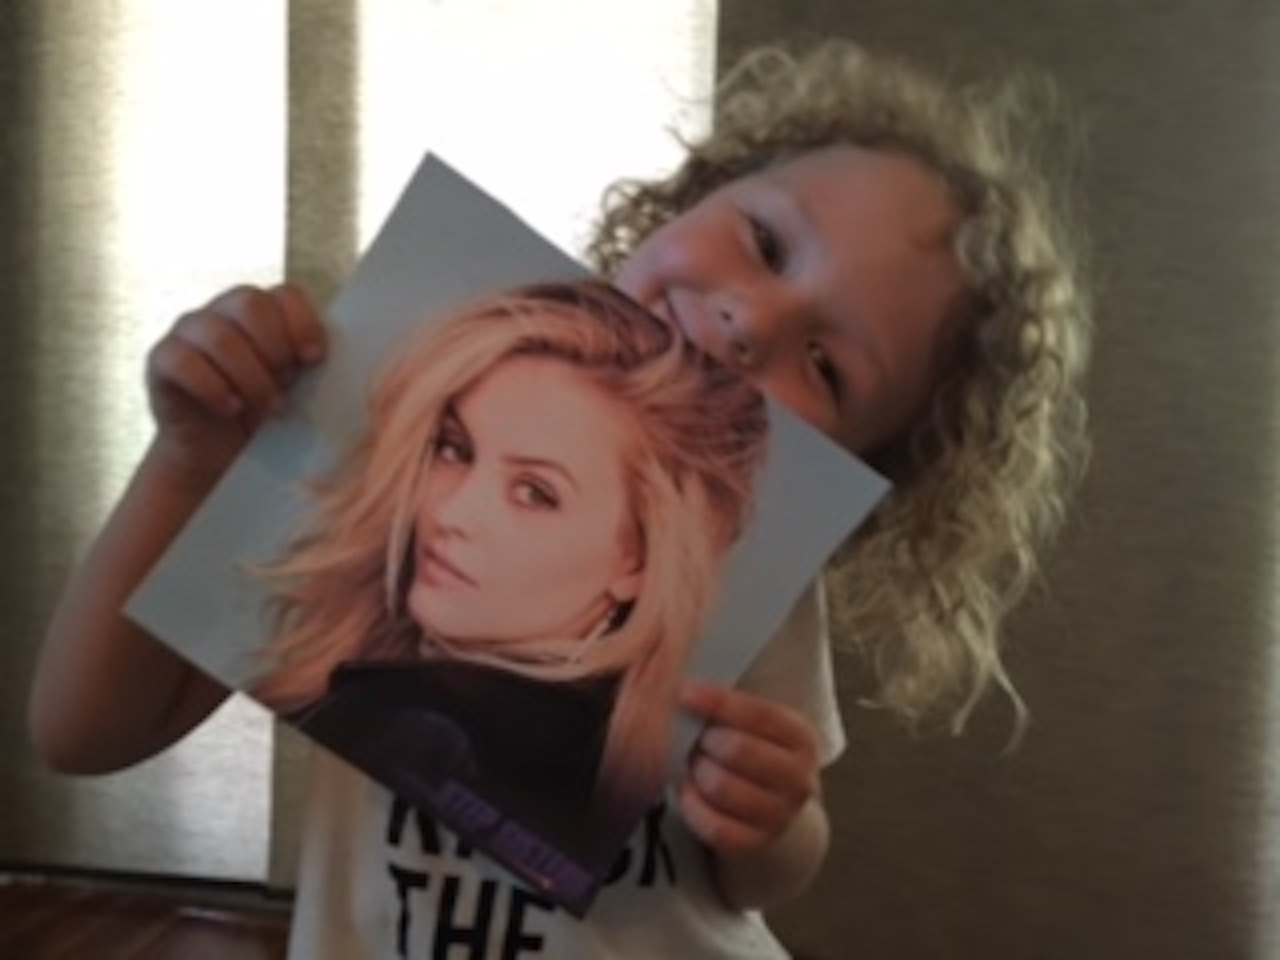 little boy with apraxia holding photo of gage golightly